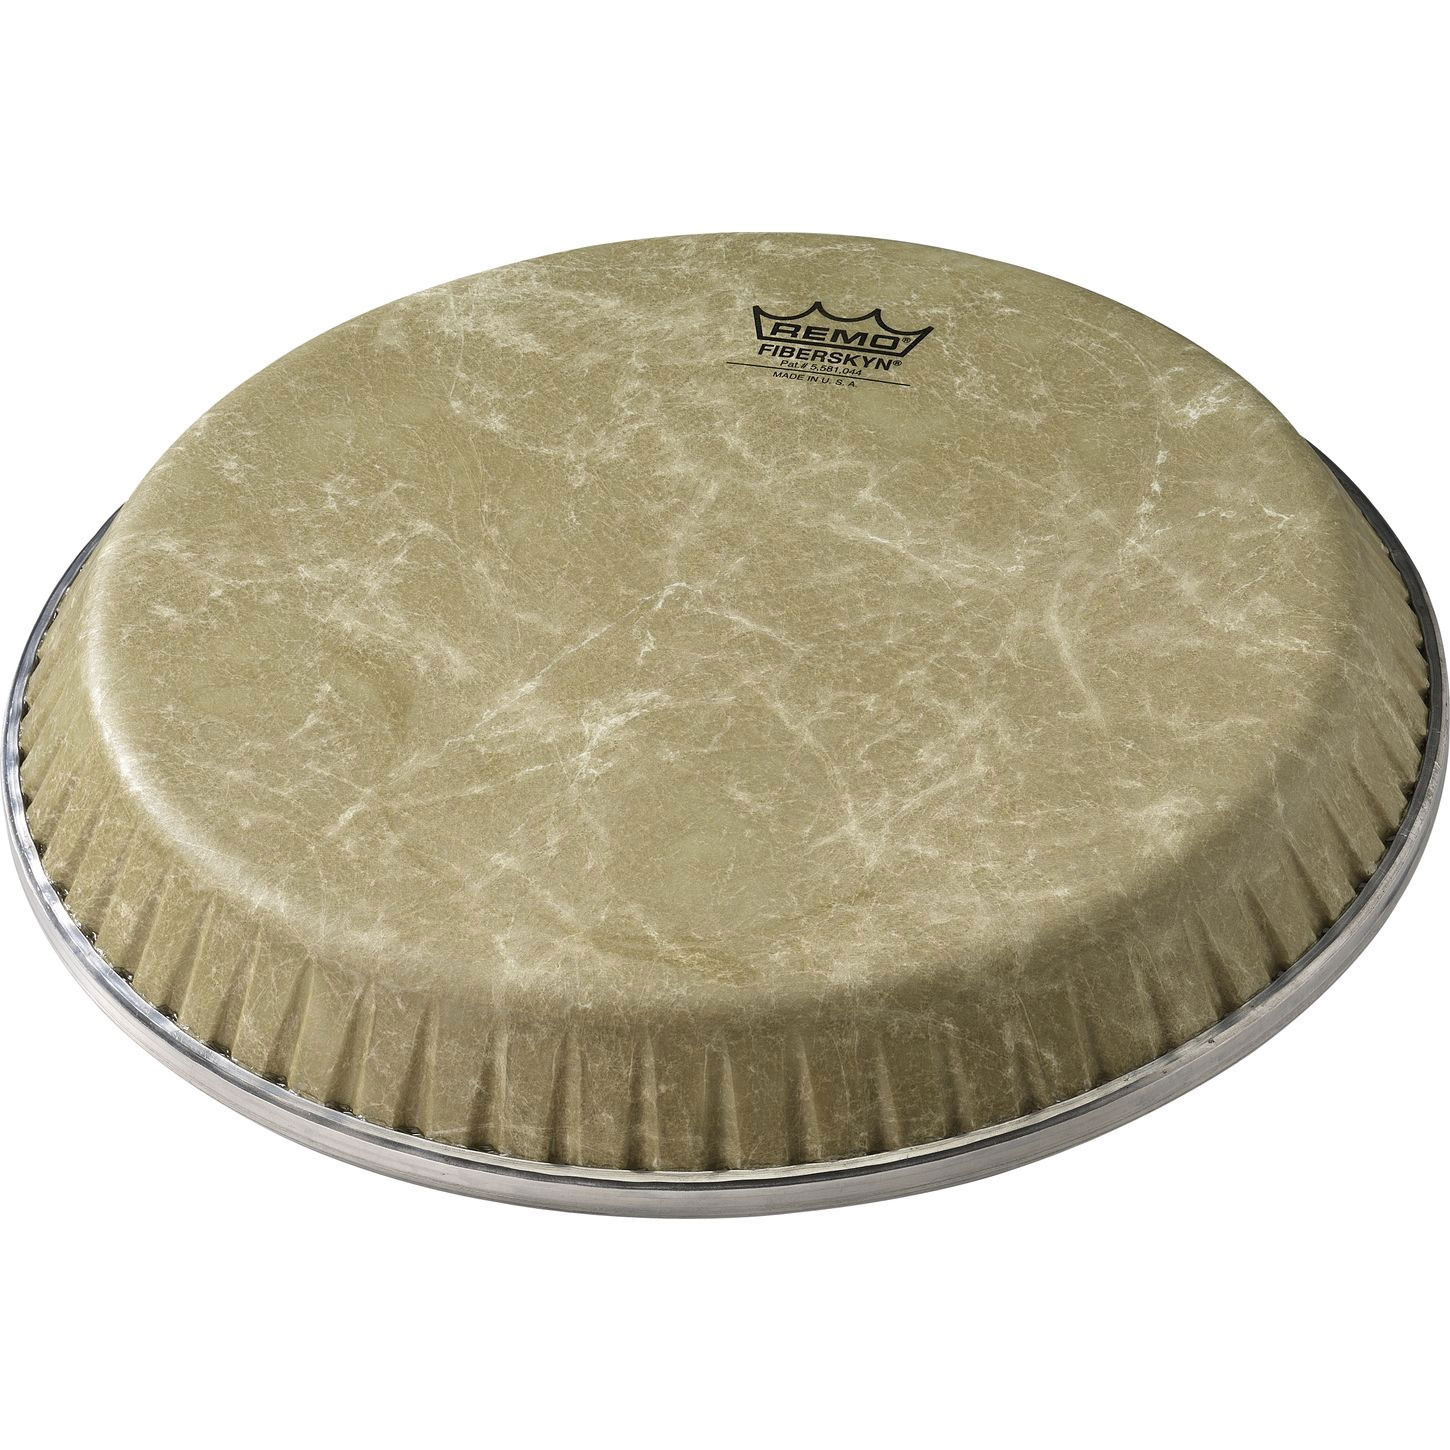 "Remo 12.25"" Symmetry Fiberskyn Conga Drum Head (D1 Collar)"